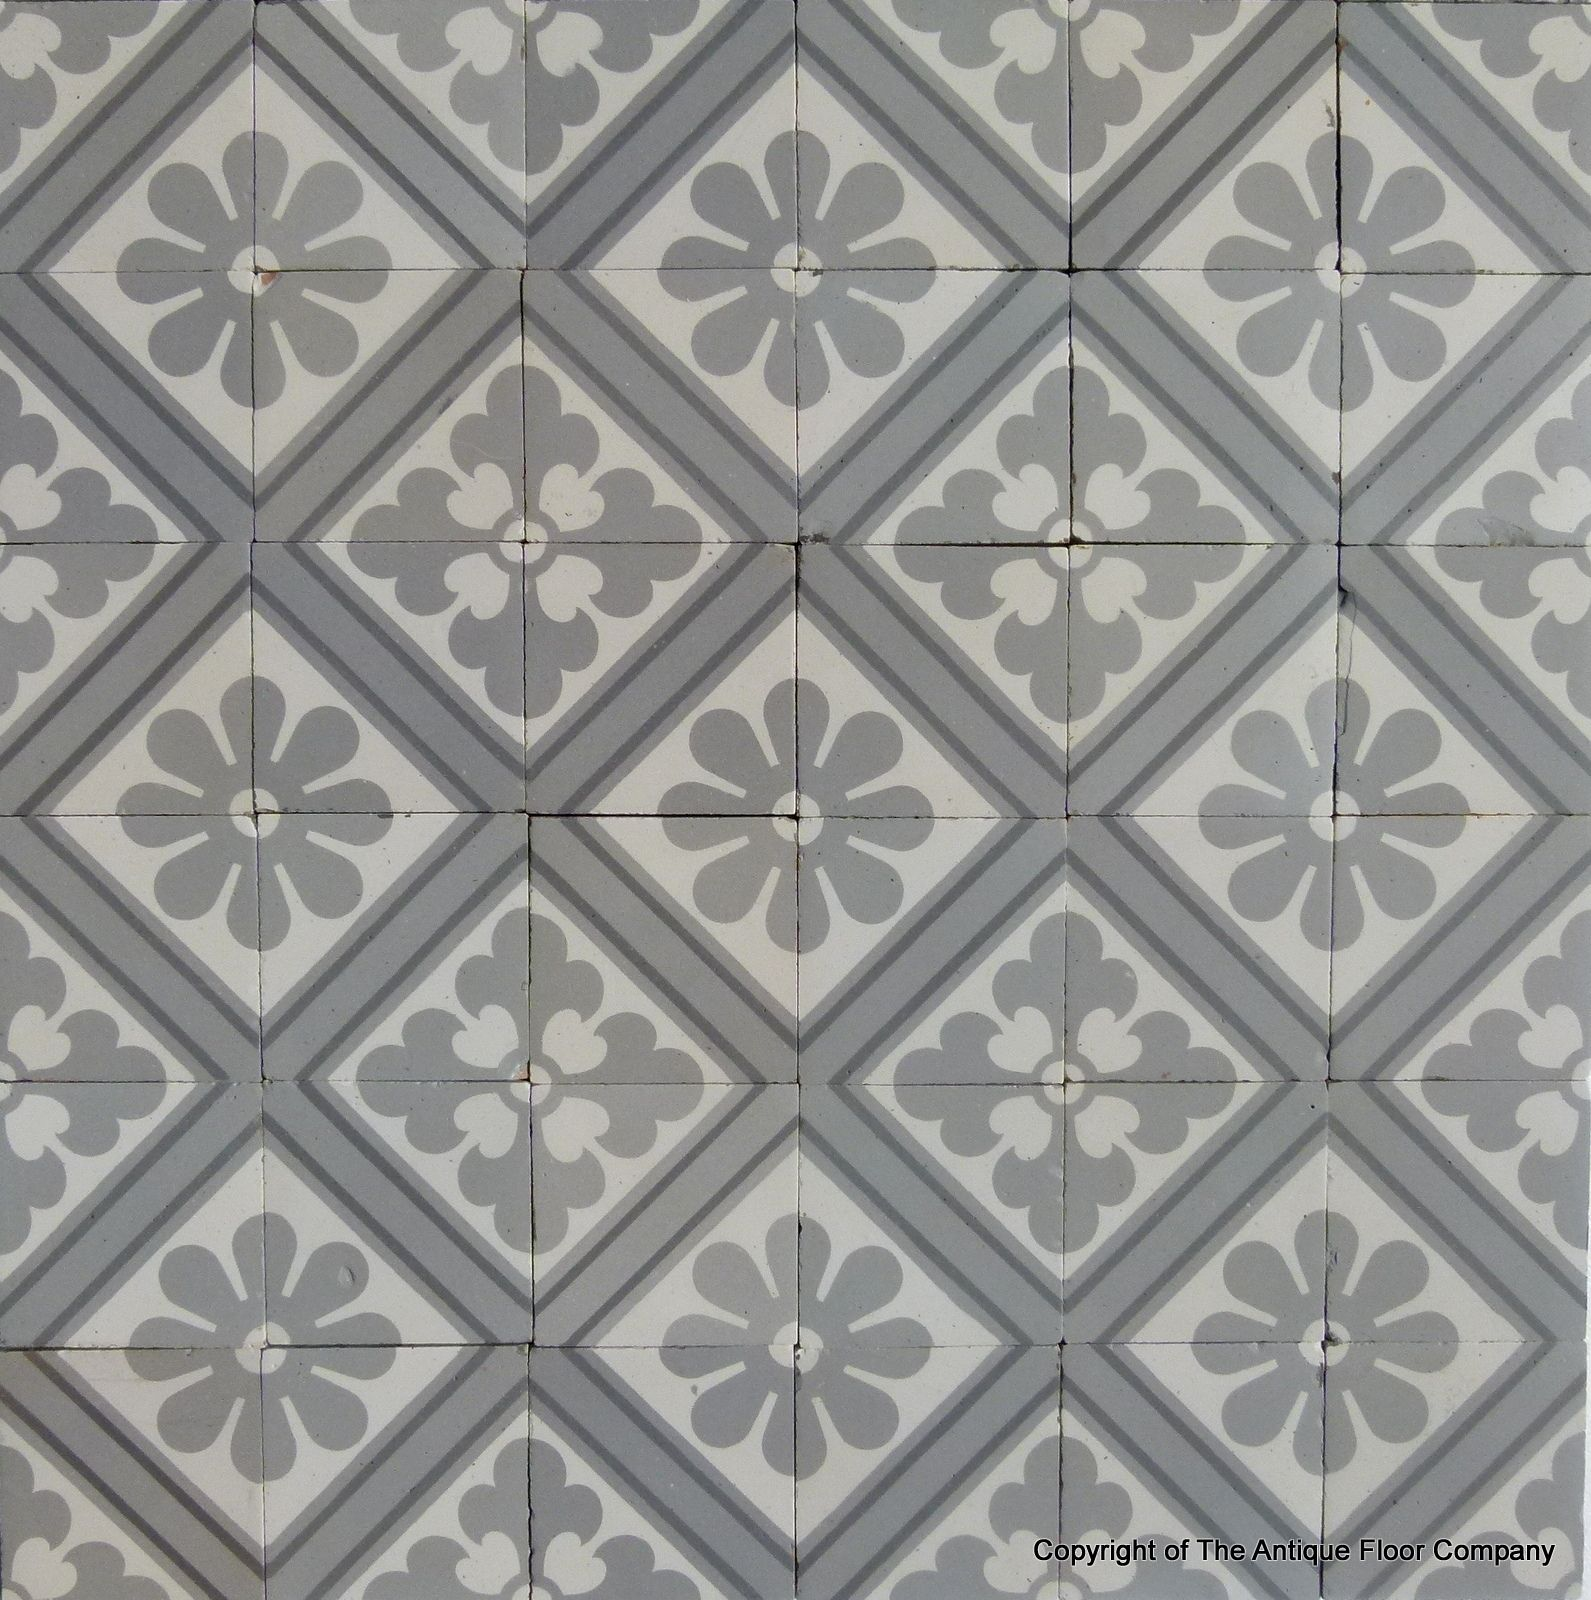 12.25m2 of classical paray le monial antique french ceramic tiles, Badezimmer ideen